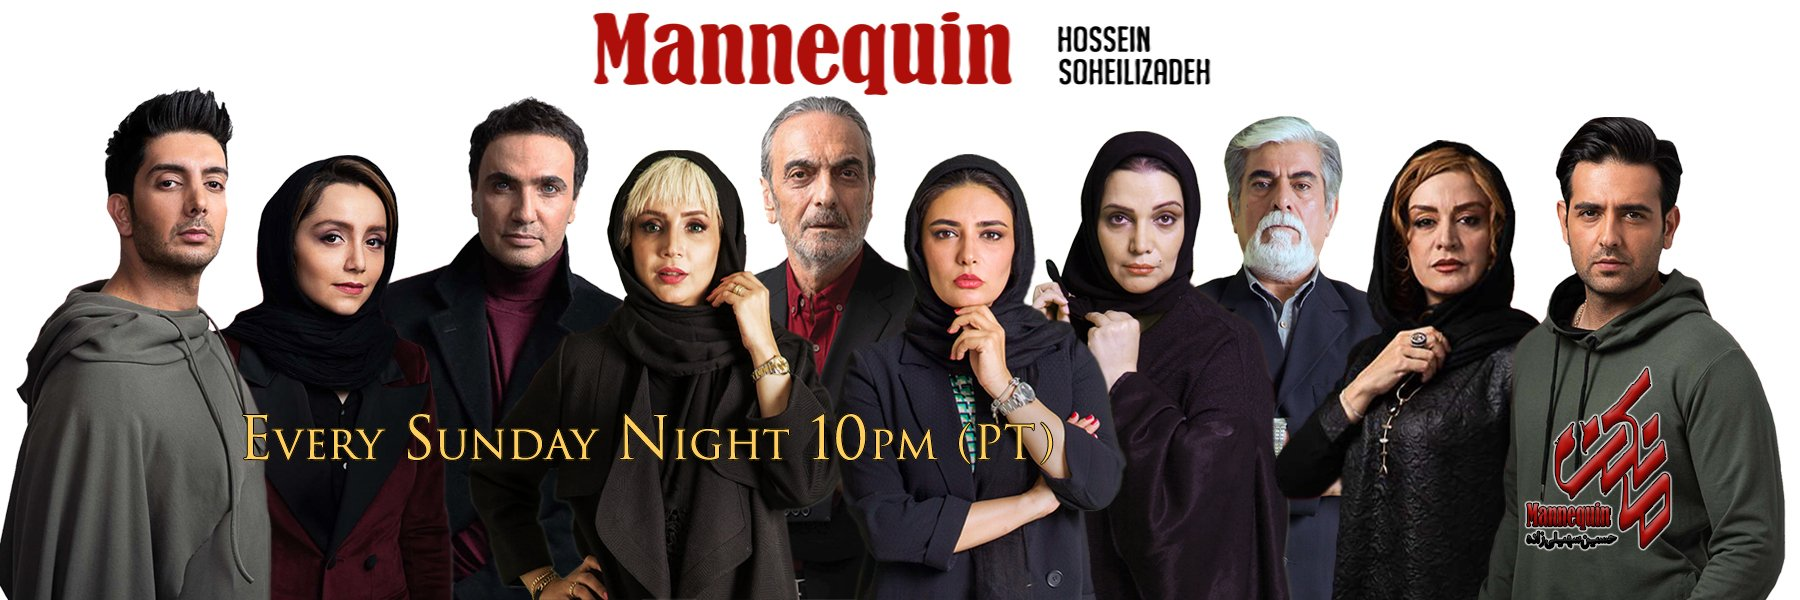 Watch the Mannequins (Mankan) series every Sunday night